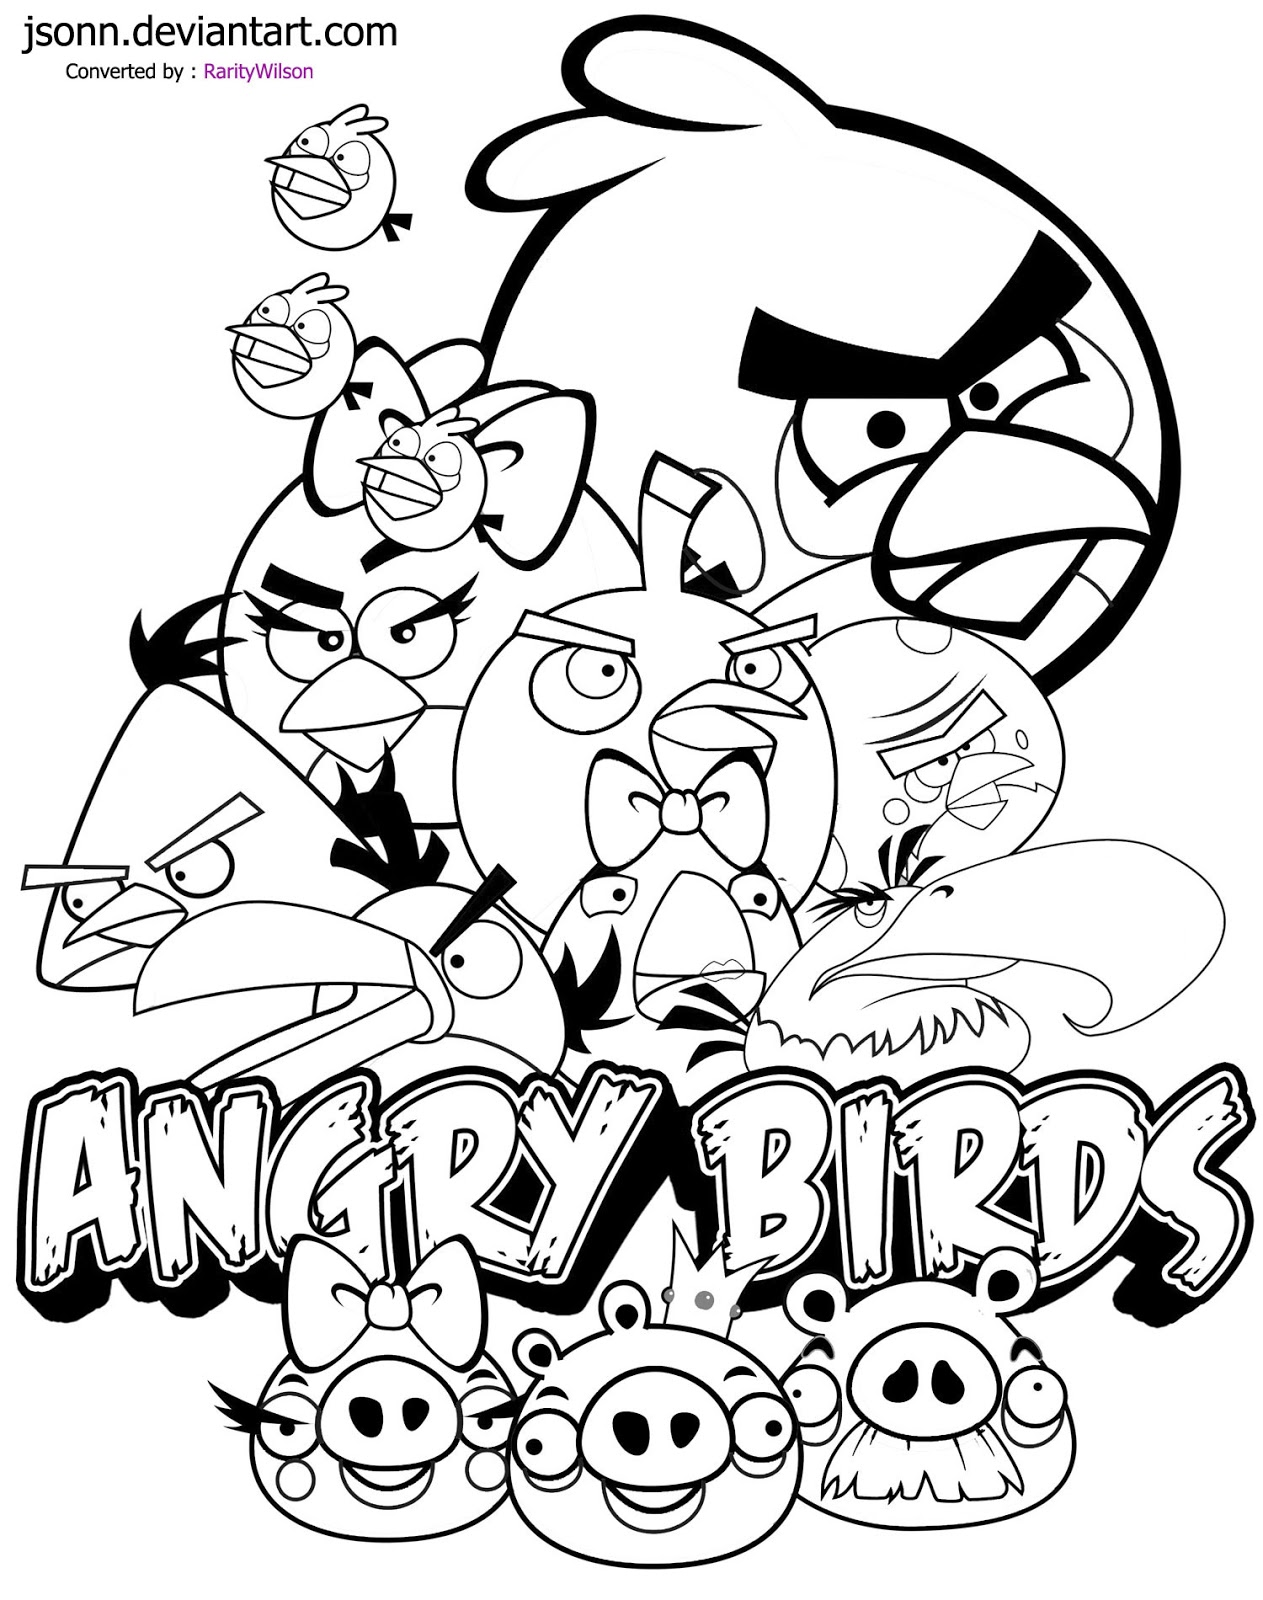 Angry Birds Coloring Pages Team colors